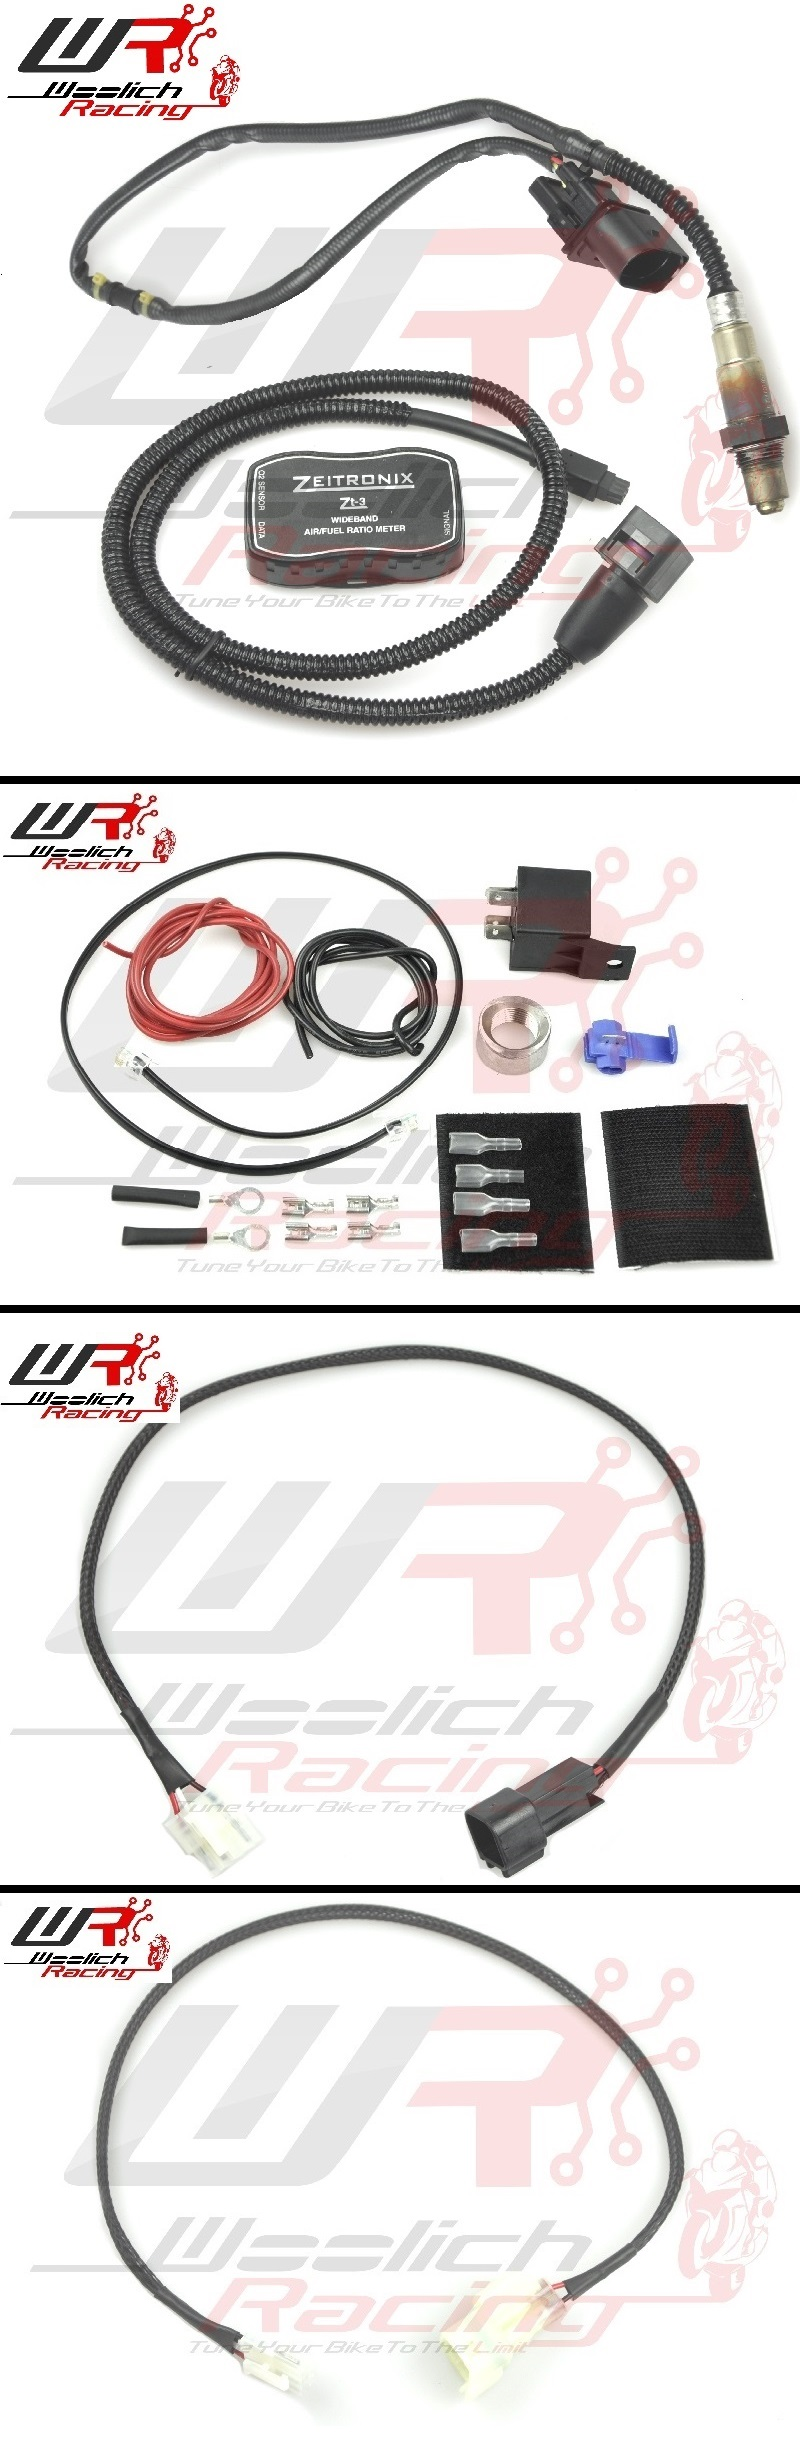 2010-2013 Kawasaki Z1000 Log Box (Denso) v3 + Zeitronix ZT-3 Wideband O2 Package